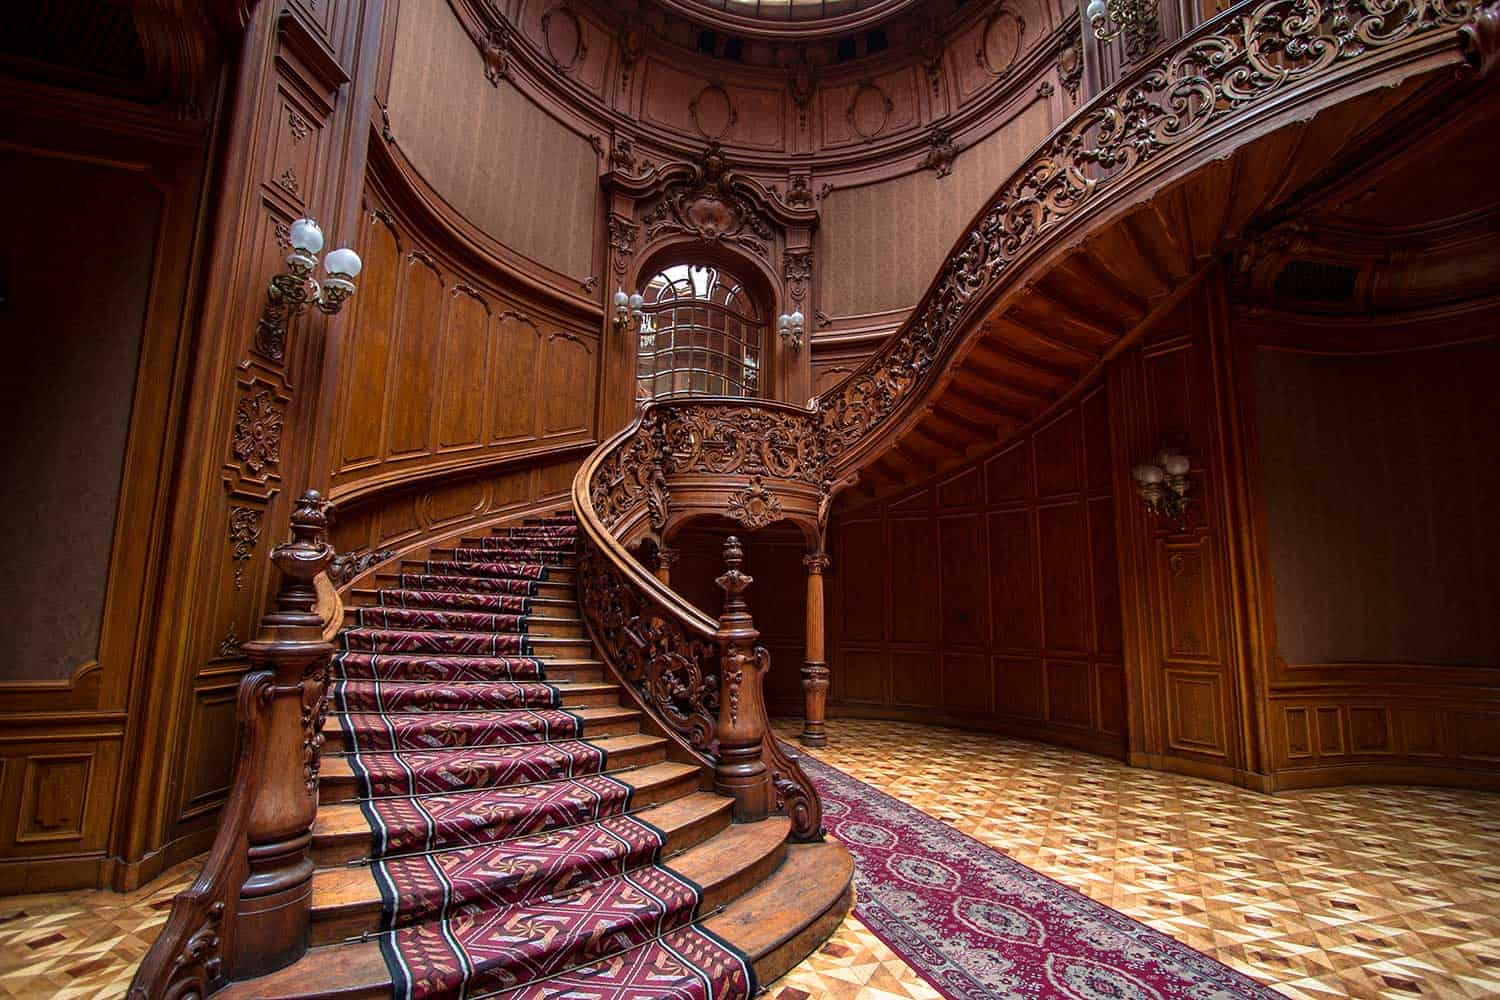 Rich entrance hall with stained-glass window, twisted staircase and laced rails